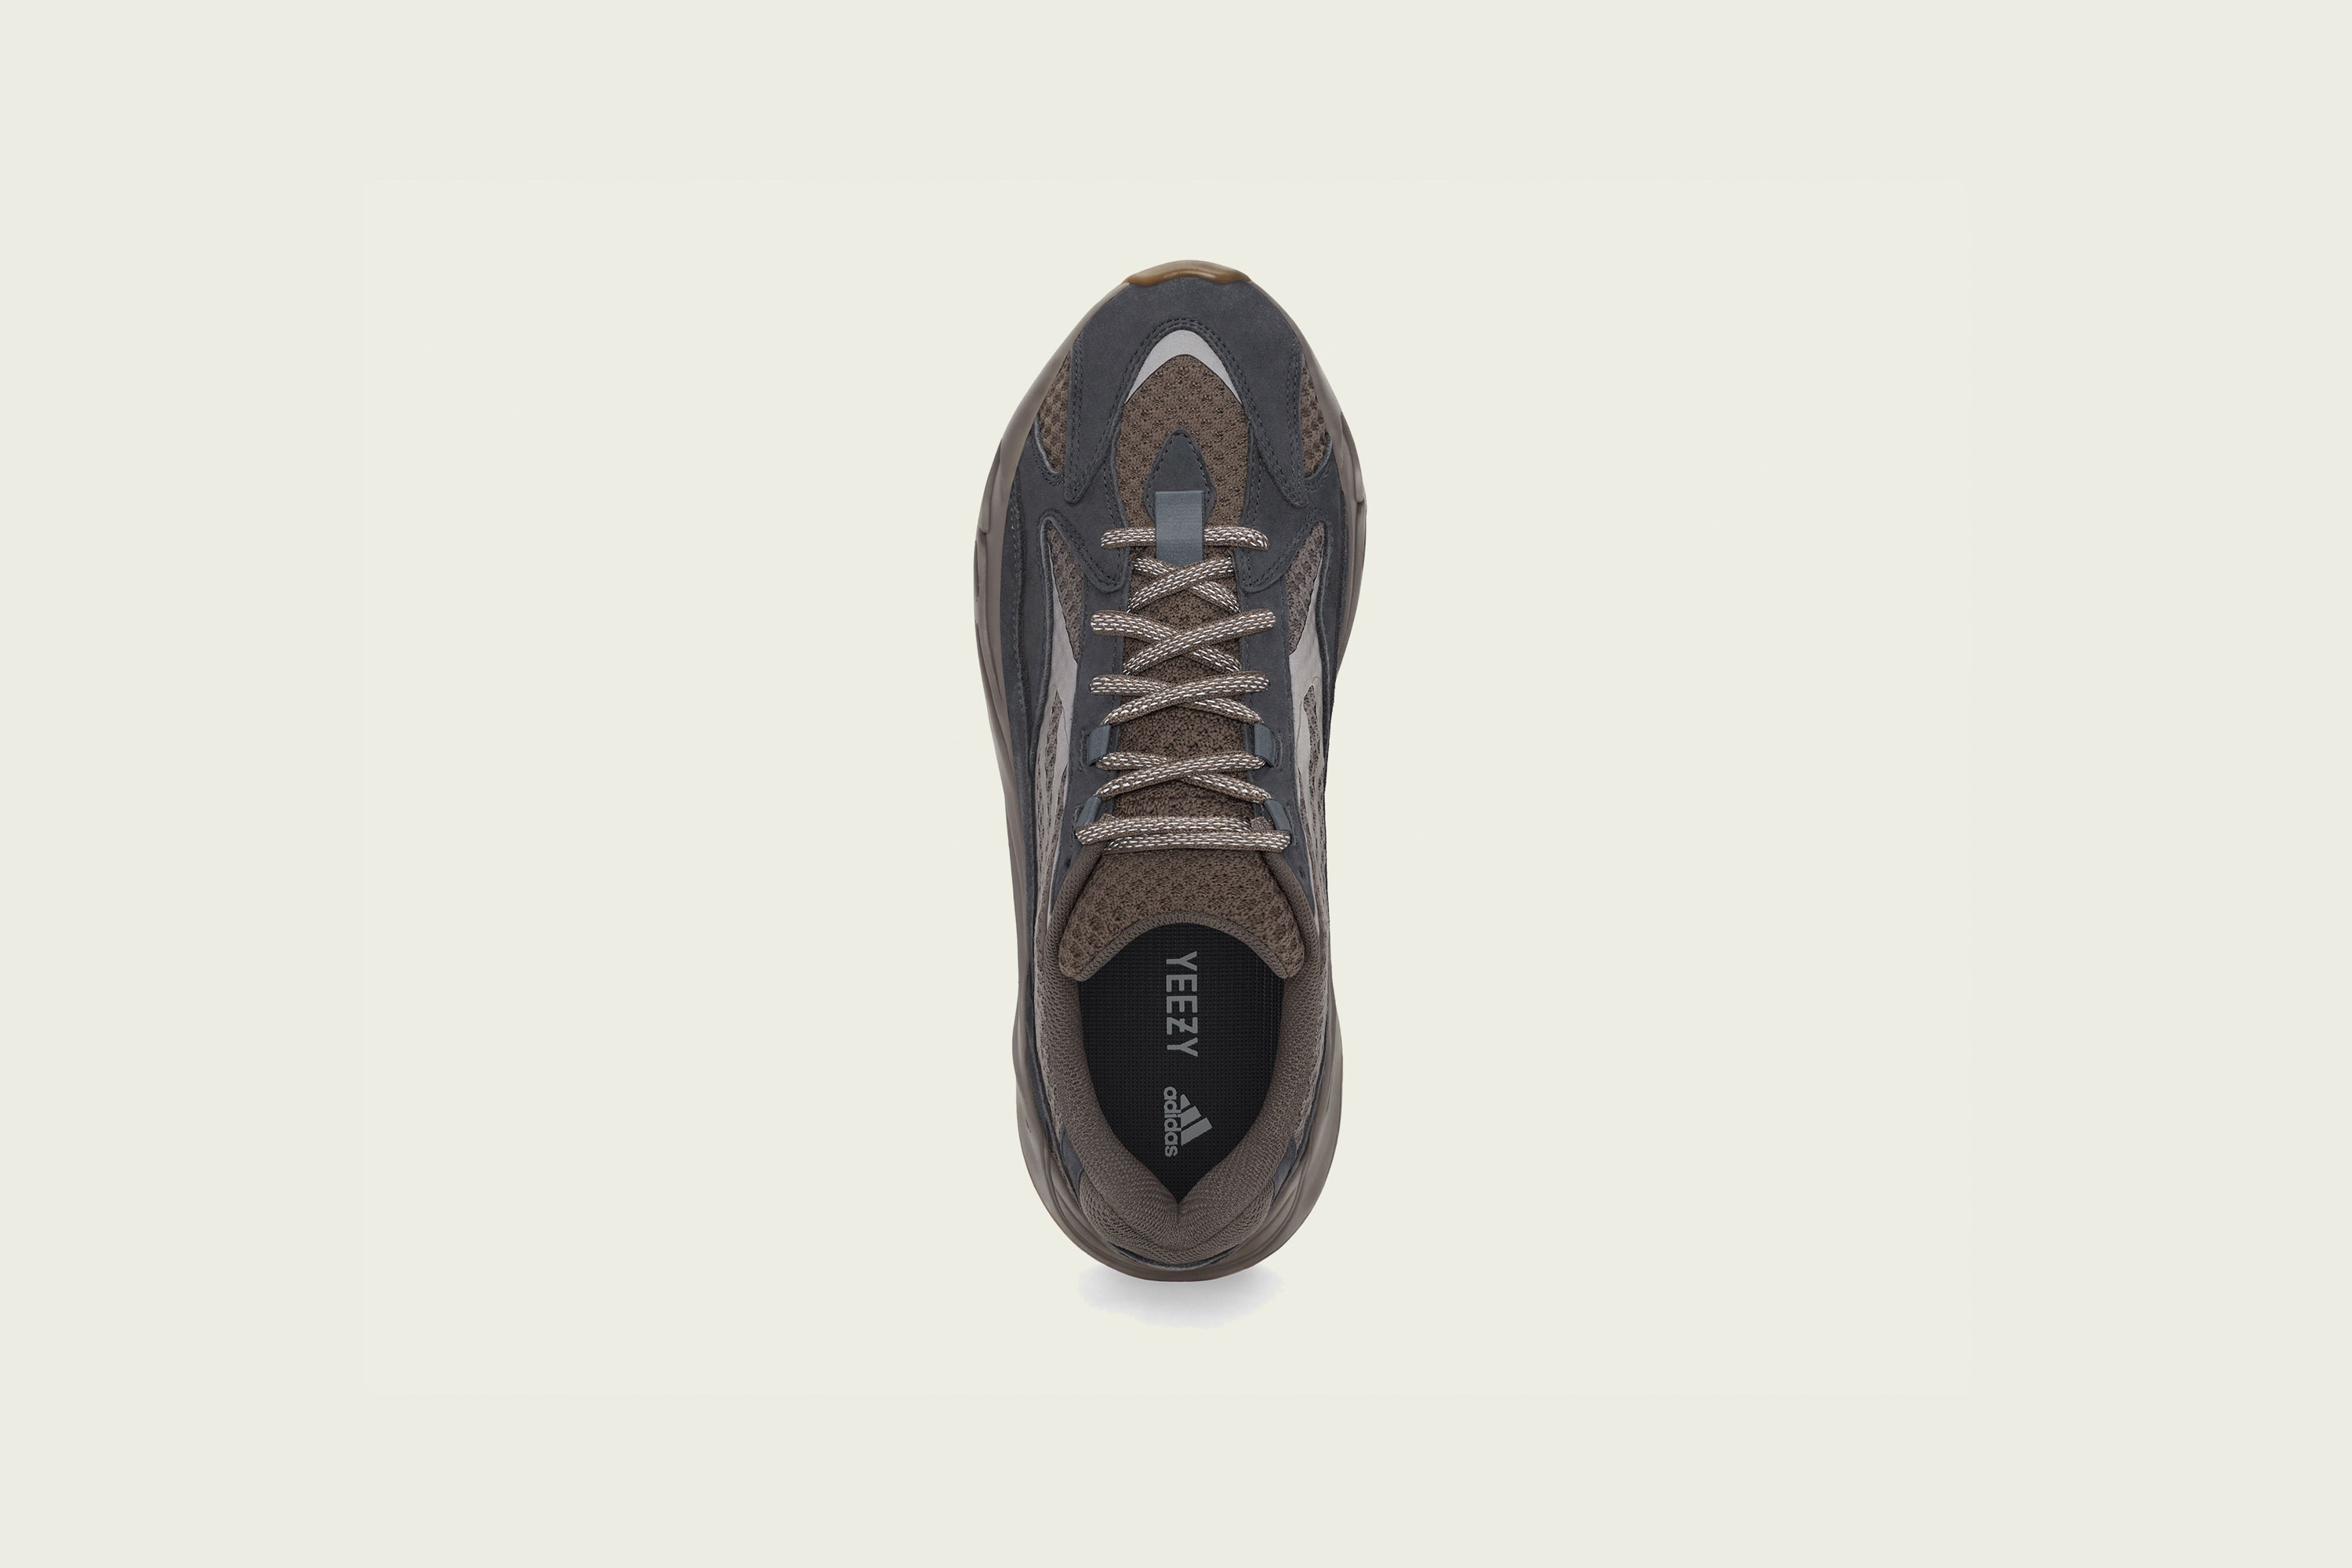 Up There Launches - adidas Originals Kanye West Yeezy YZY 700V2 'Mauve'